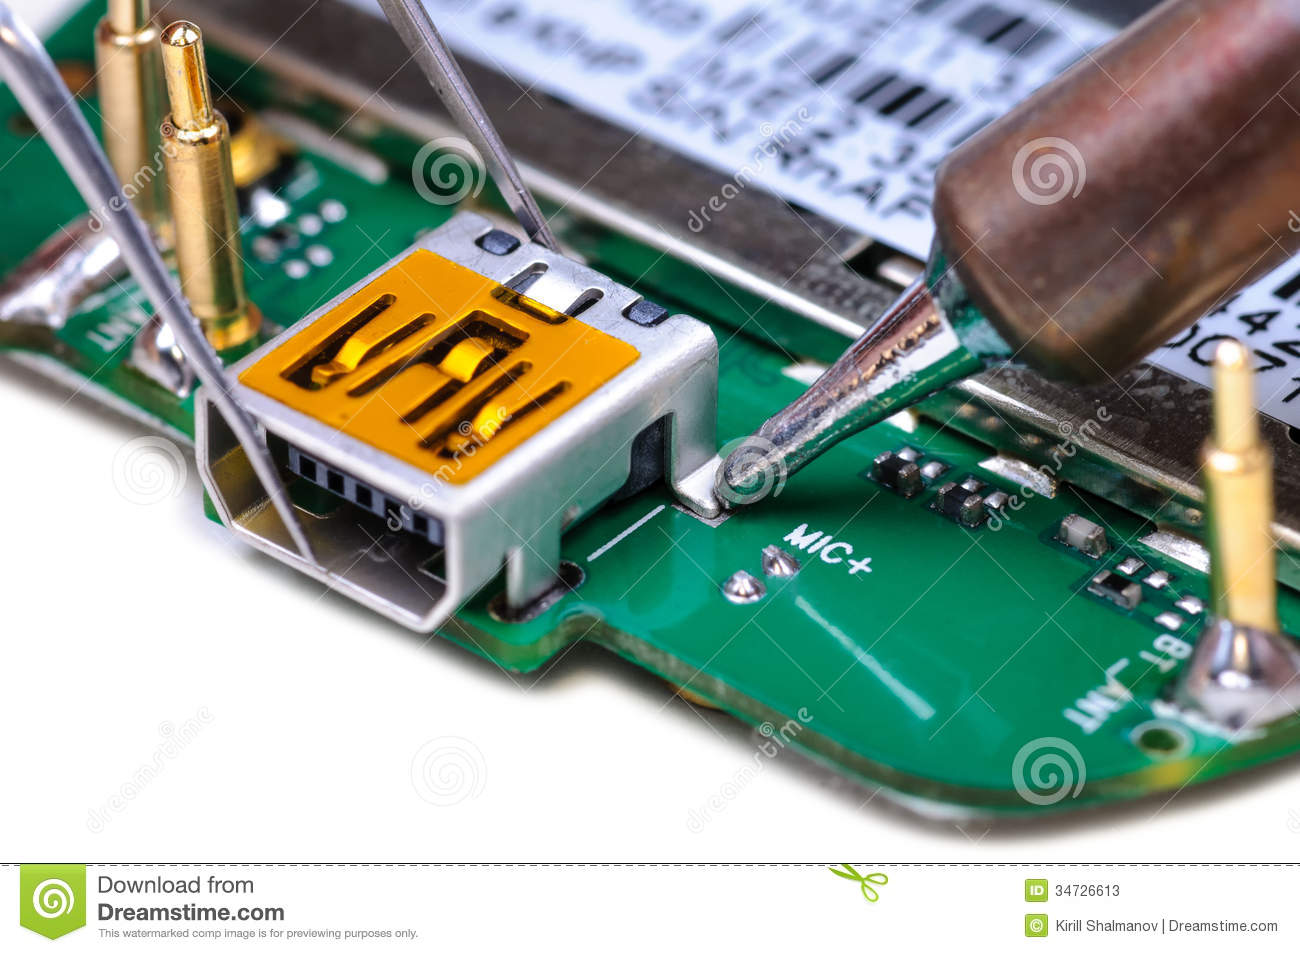 mobile phone repair in electronic lab working place stock imageelectronic technician repairs mini usb socket on mobile phone circuit board close up with selective focus and shallow depth of field